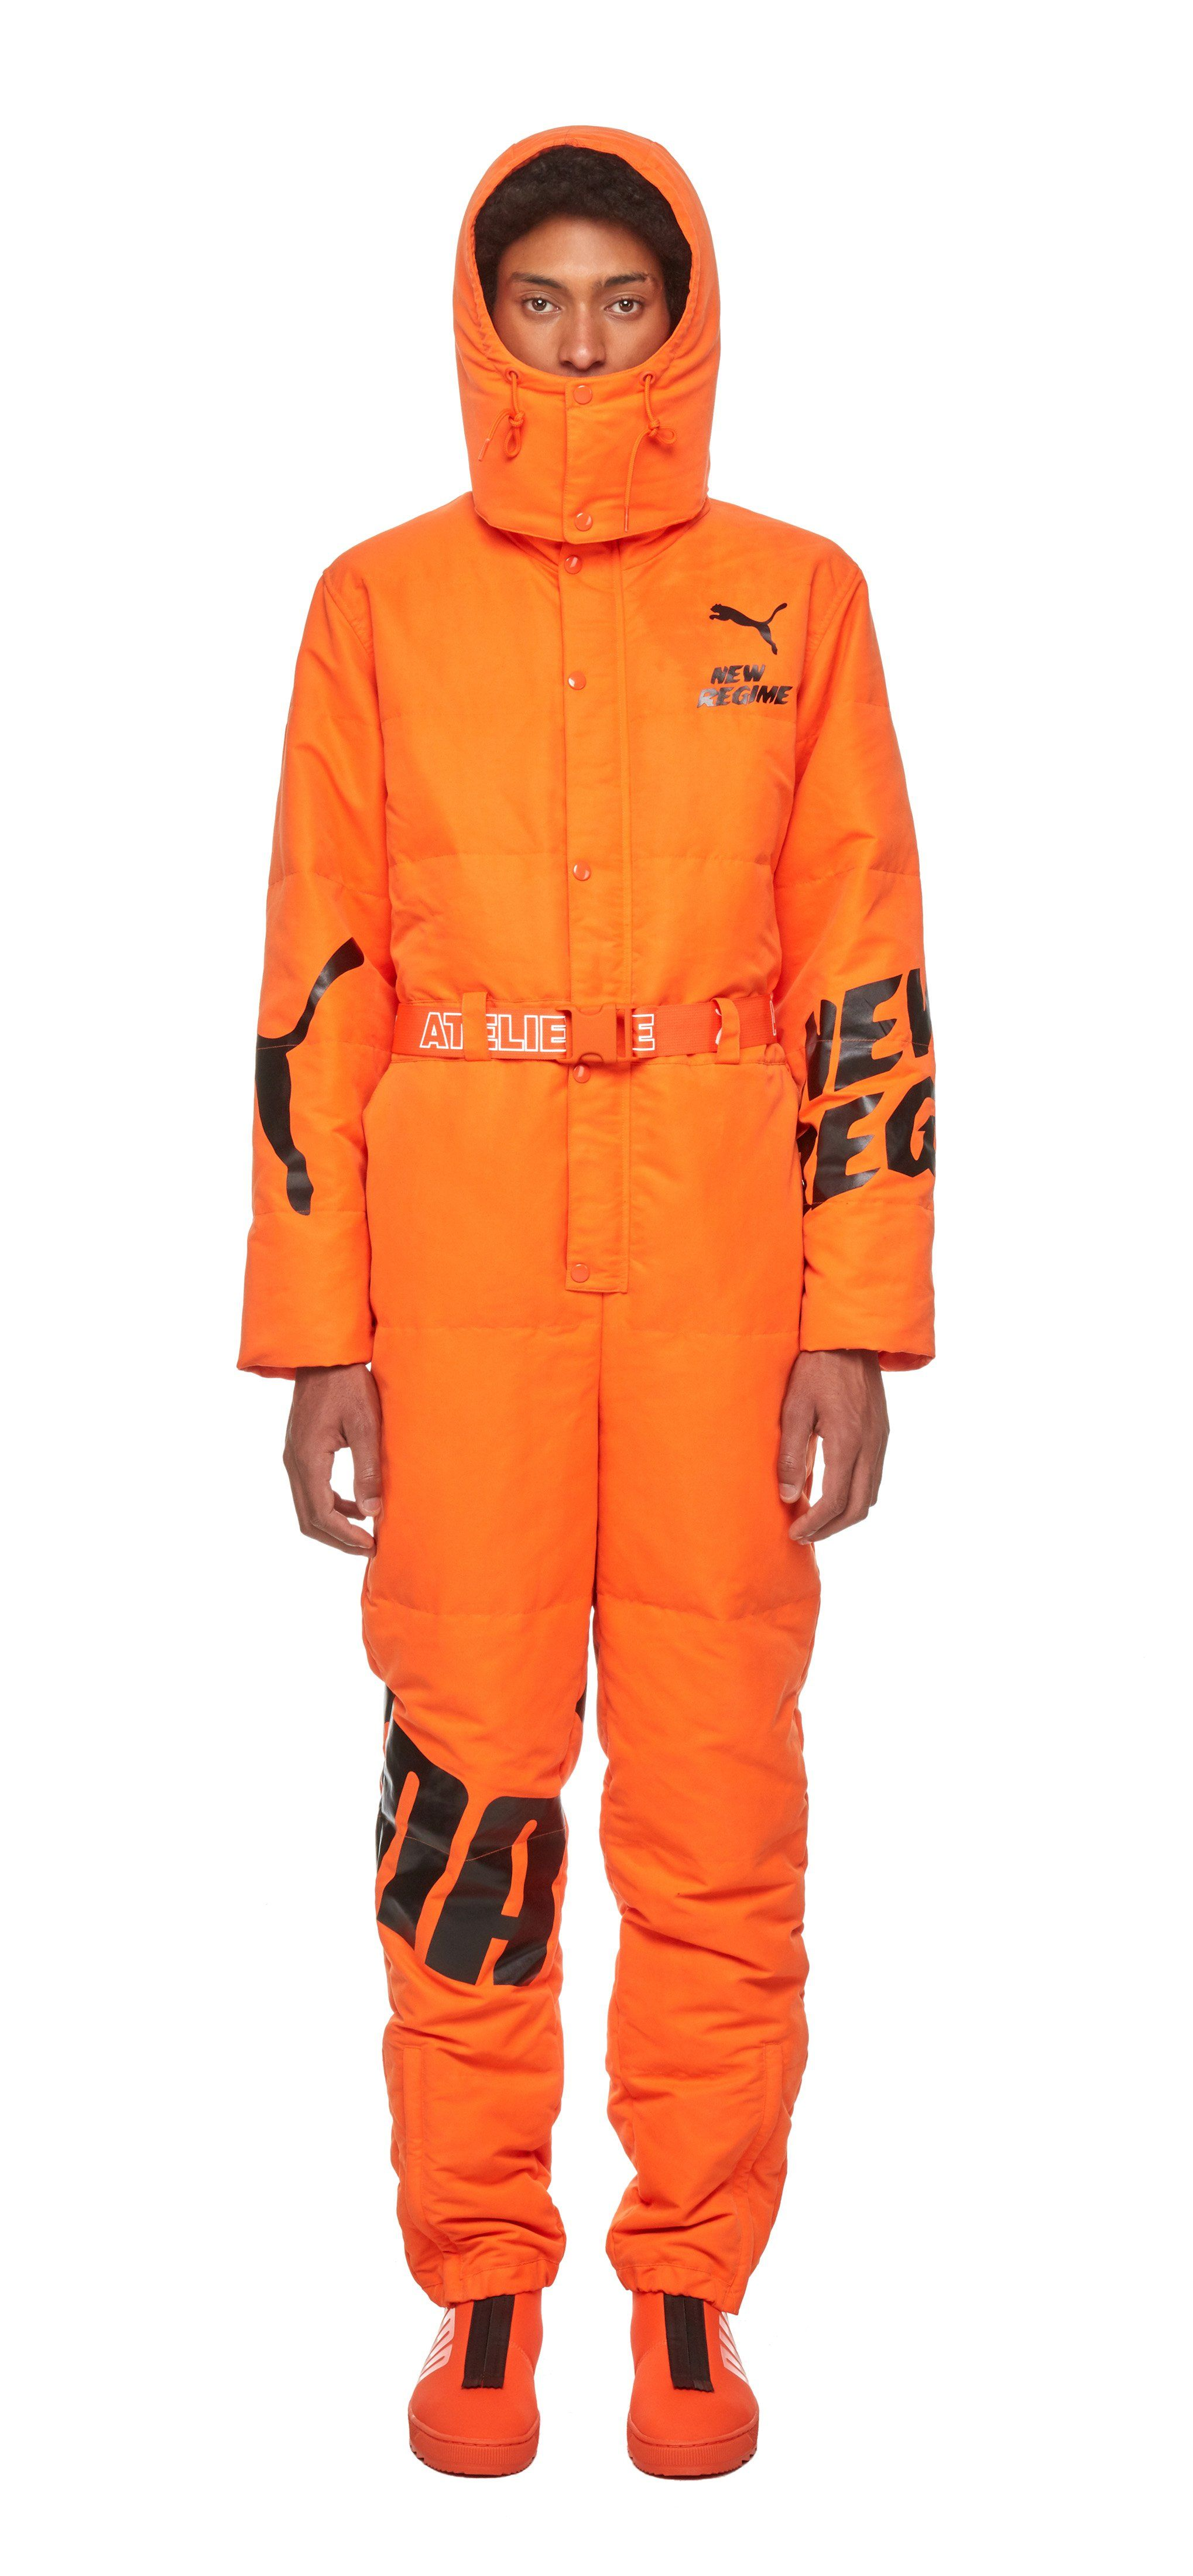 66e927e52744 PUMA X ANR Overall   This PUMA x ANR motorsport inspired one-piece snowsuit  features